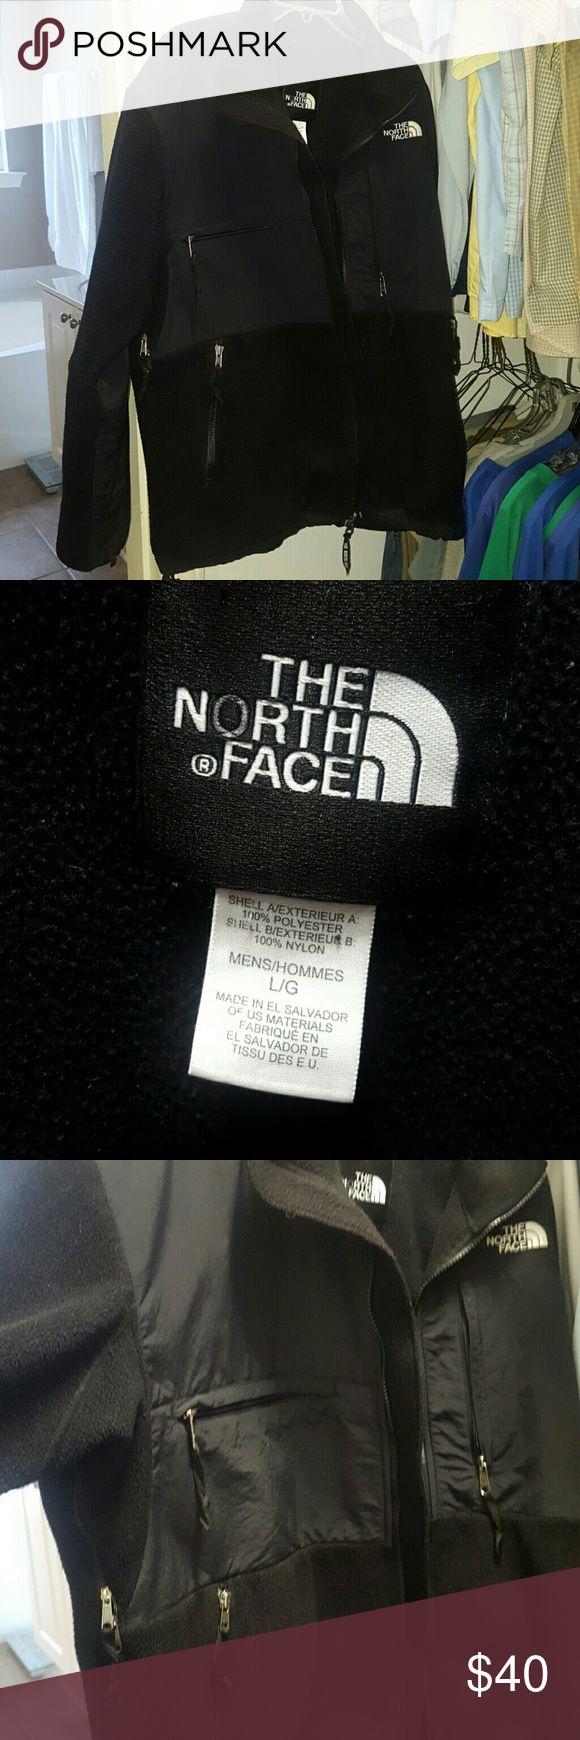 North Face Men's Denali Jacket Large Great North Face jacket for those weekends tailgating or football games.  Great Bargain too.  Feel free to make an offer. North Face Jackets & Coats Ski & Snowboard